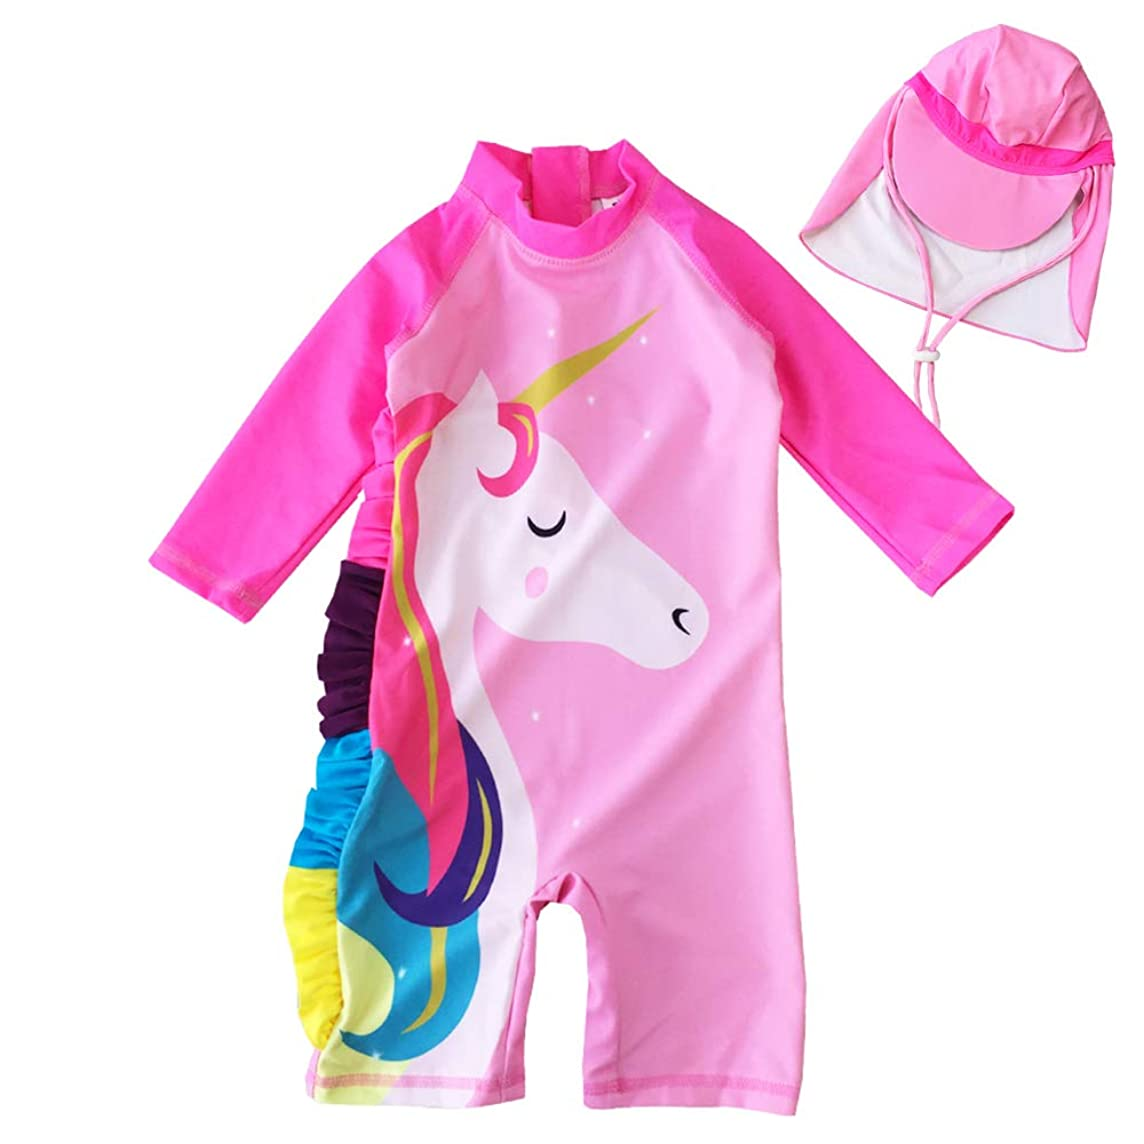 Baby Toddler Girl Unicorn Swimsuit Short Sleeve Bathing Suit-One Piece Swimwear Infant Toddler Sunsuits for Baby Girls